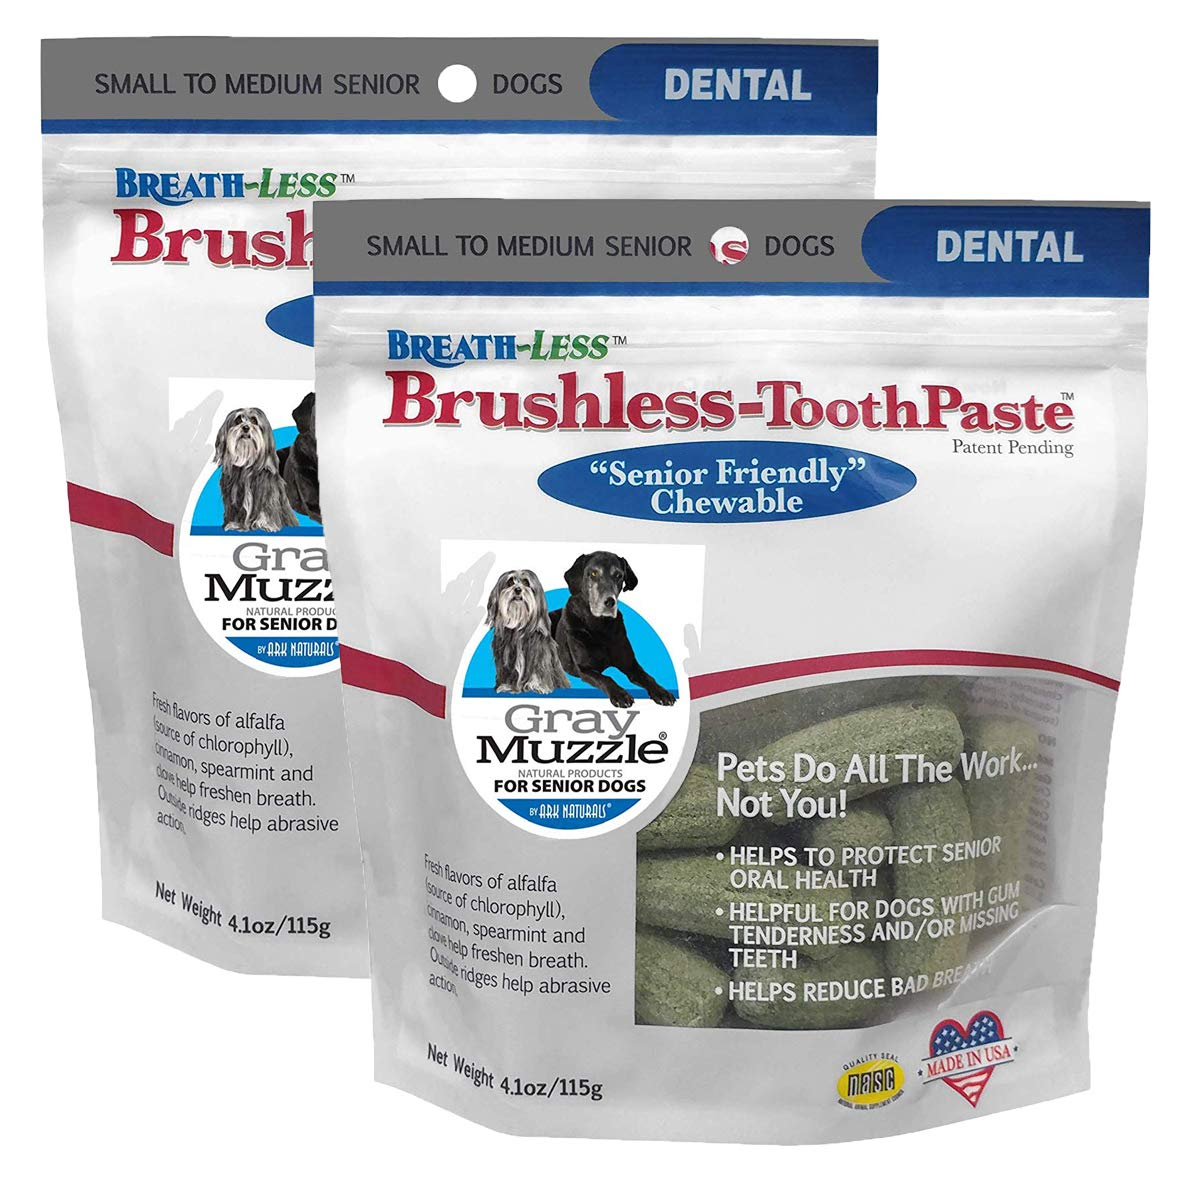 Ark Naturals Breath-Less Brushless Toothpaste, Vet Recommended Natural Dental Chews for Dogs, Plaque, Tartar and Bacteria Control by ARK NATURALS